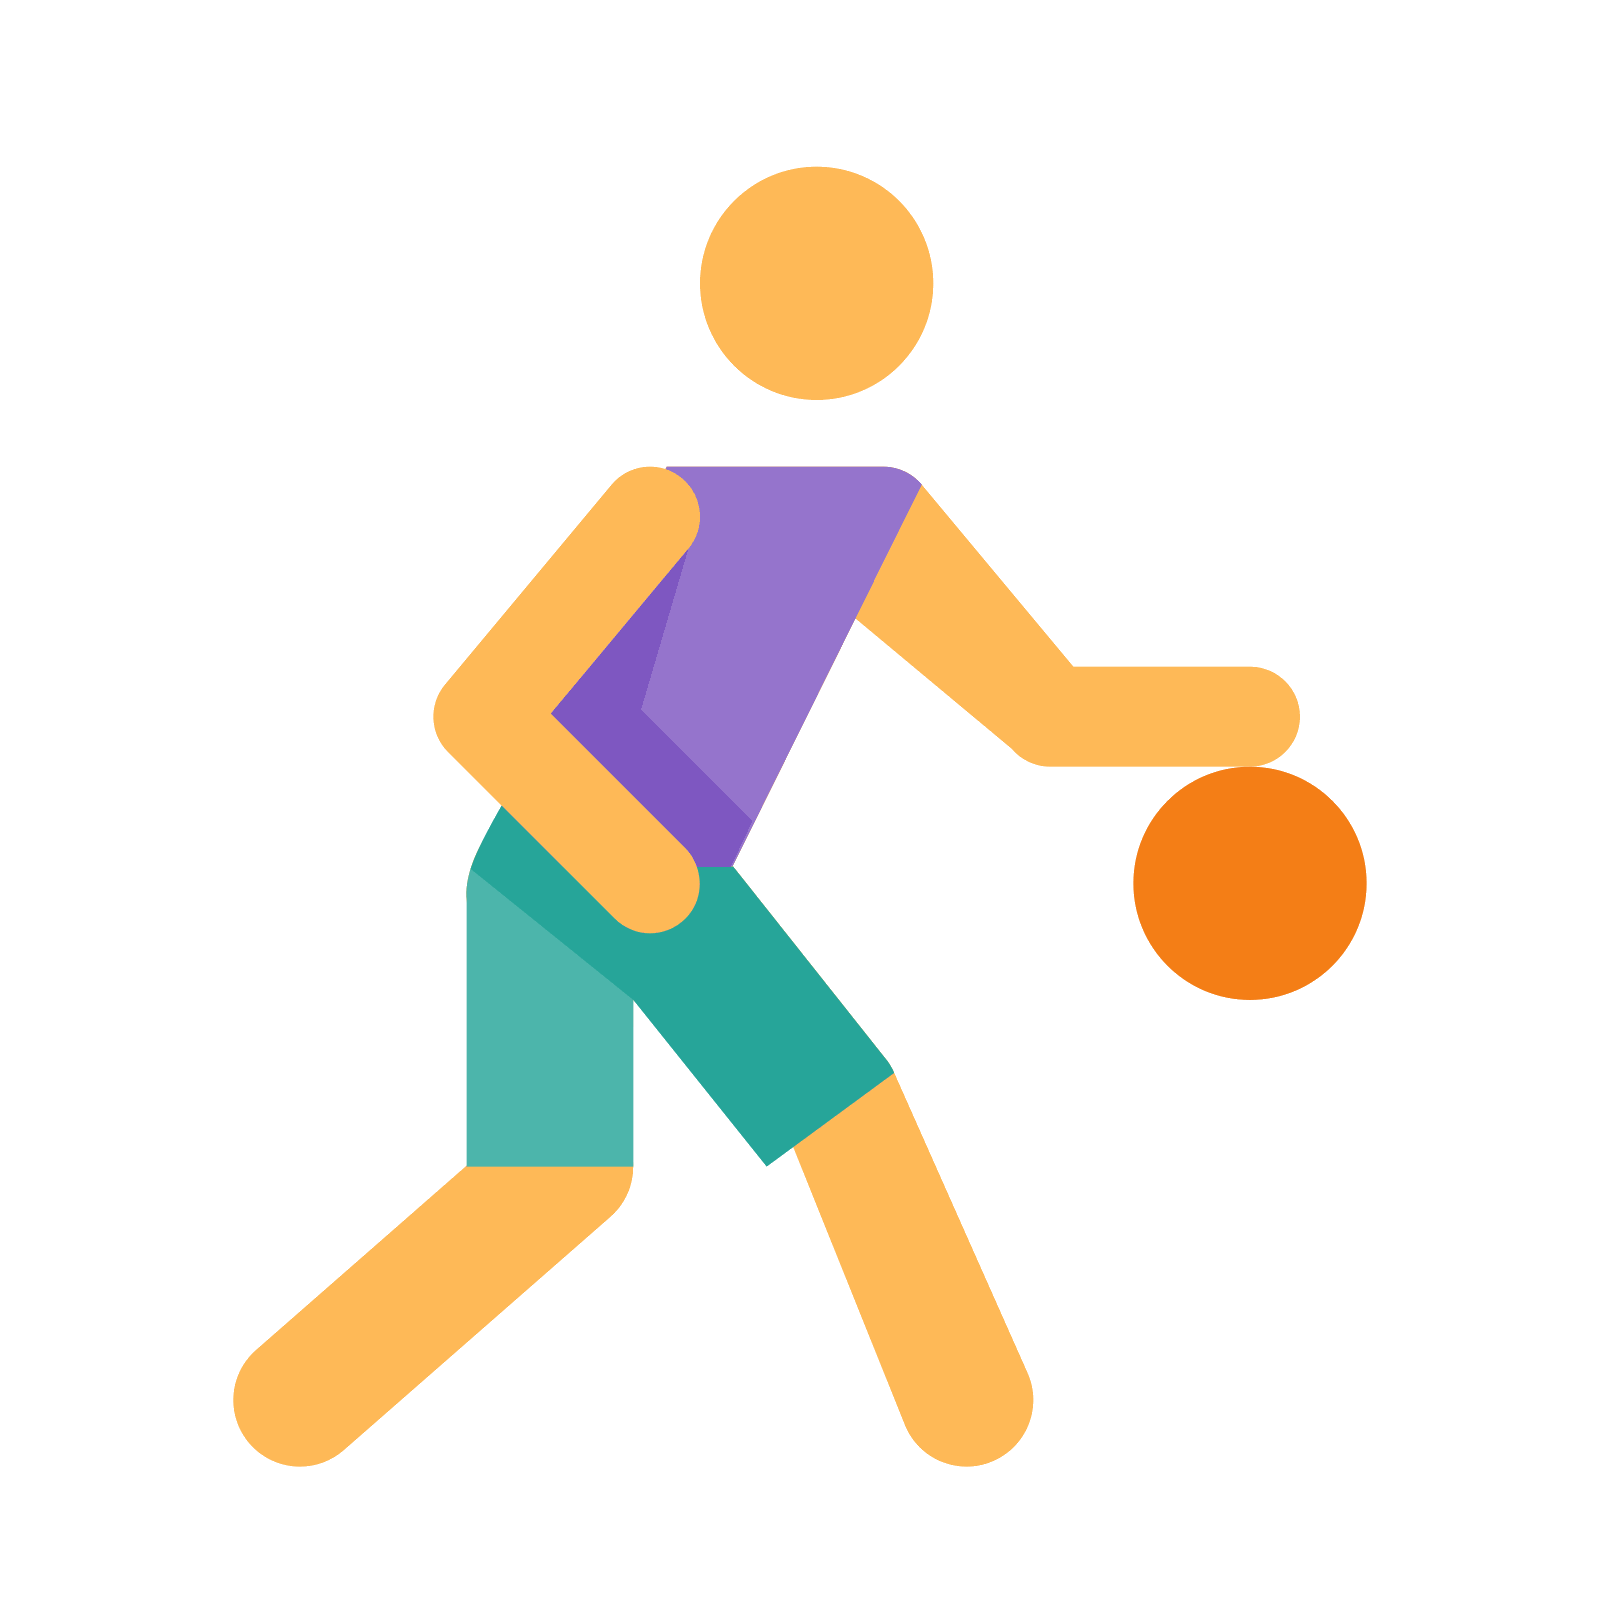 2 player basketball clipart royalty free download Basketball Player Icon - free download, PNG and vector royalty free download